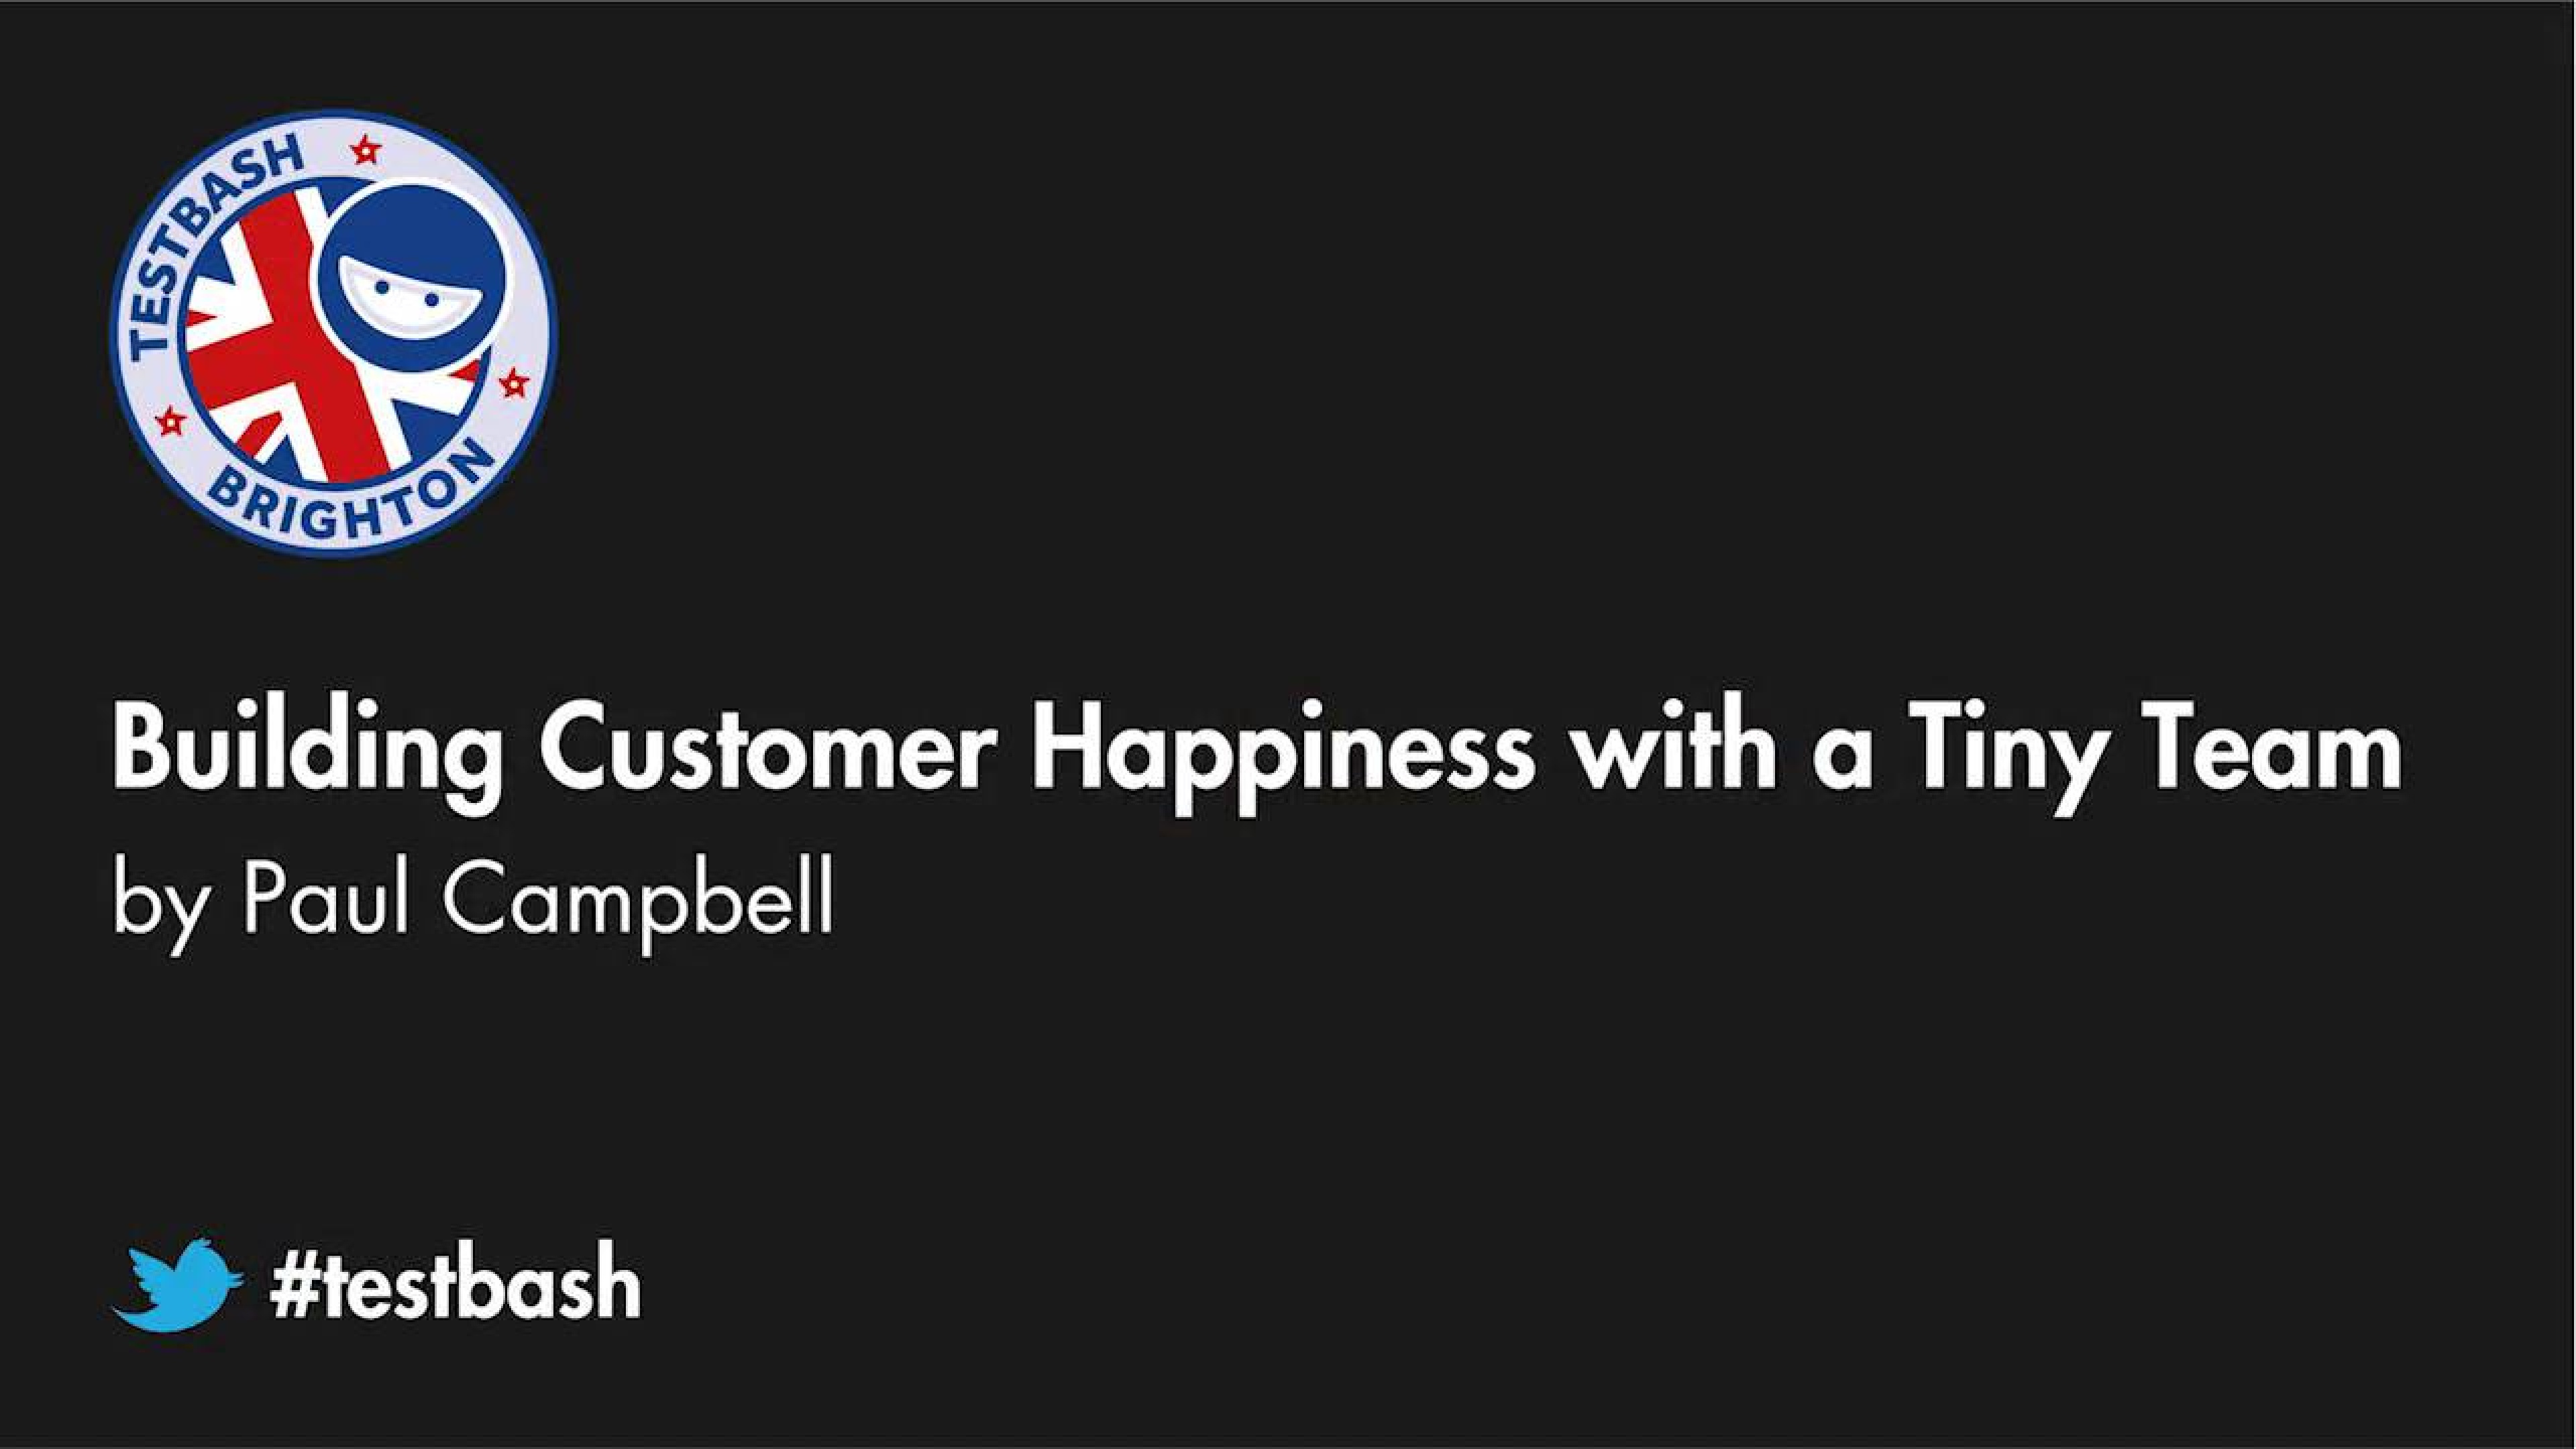 Building Customer Happiness with a Tiny Team - Paul Campbell